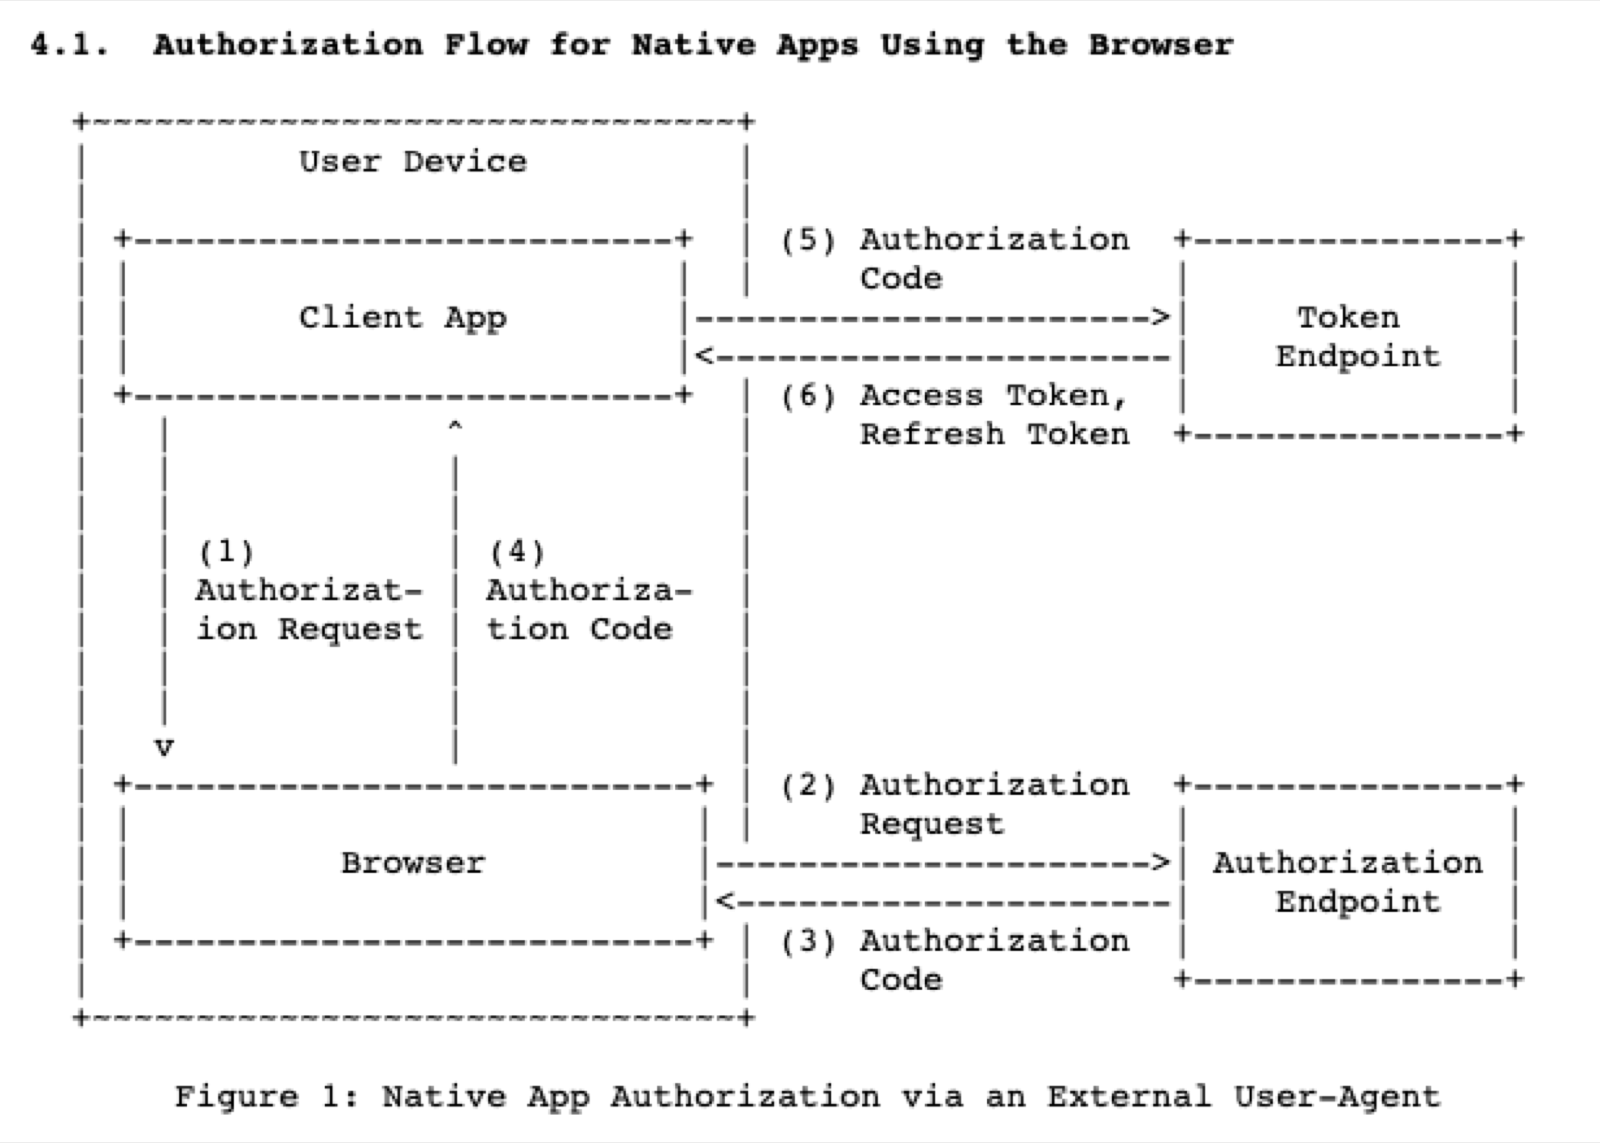 The authorization code flow for native applications.